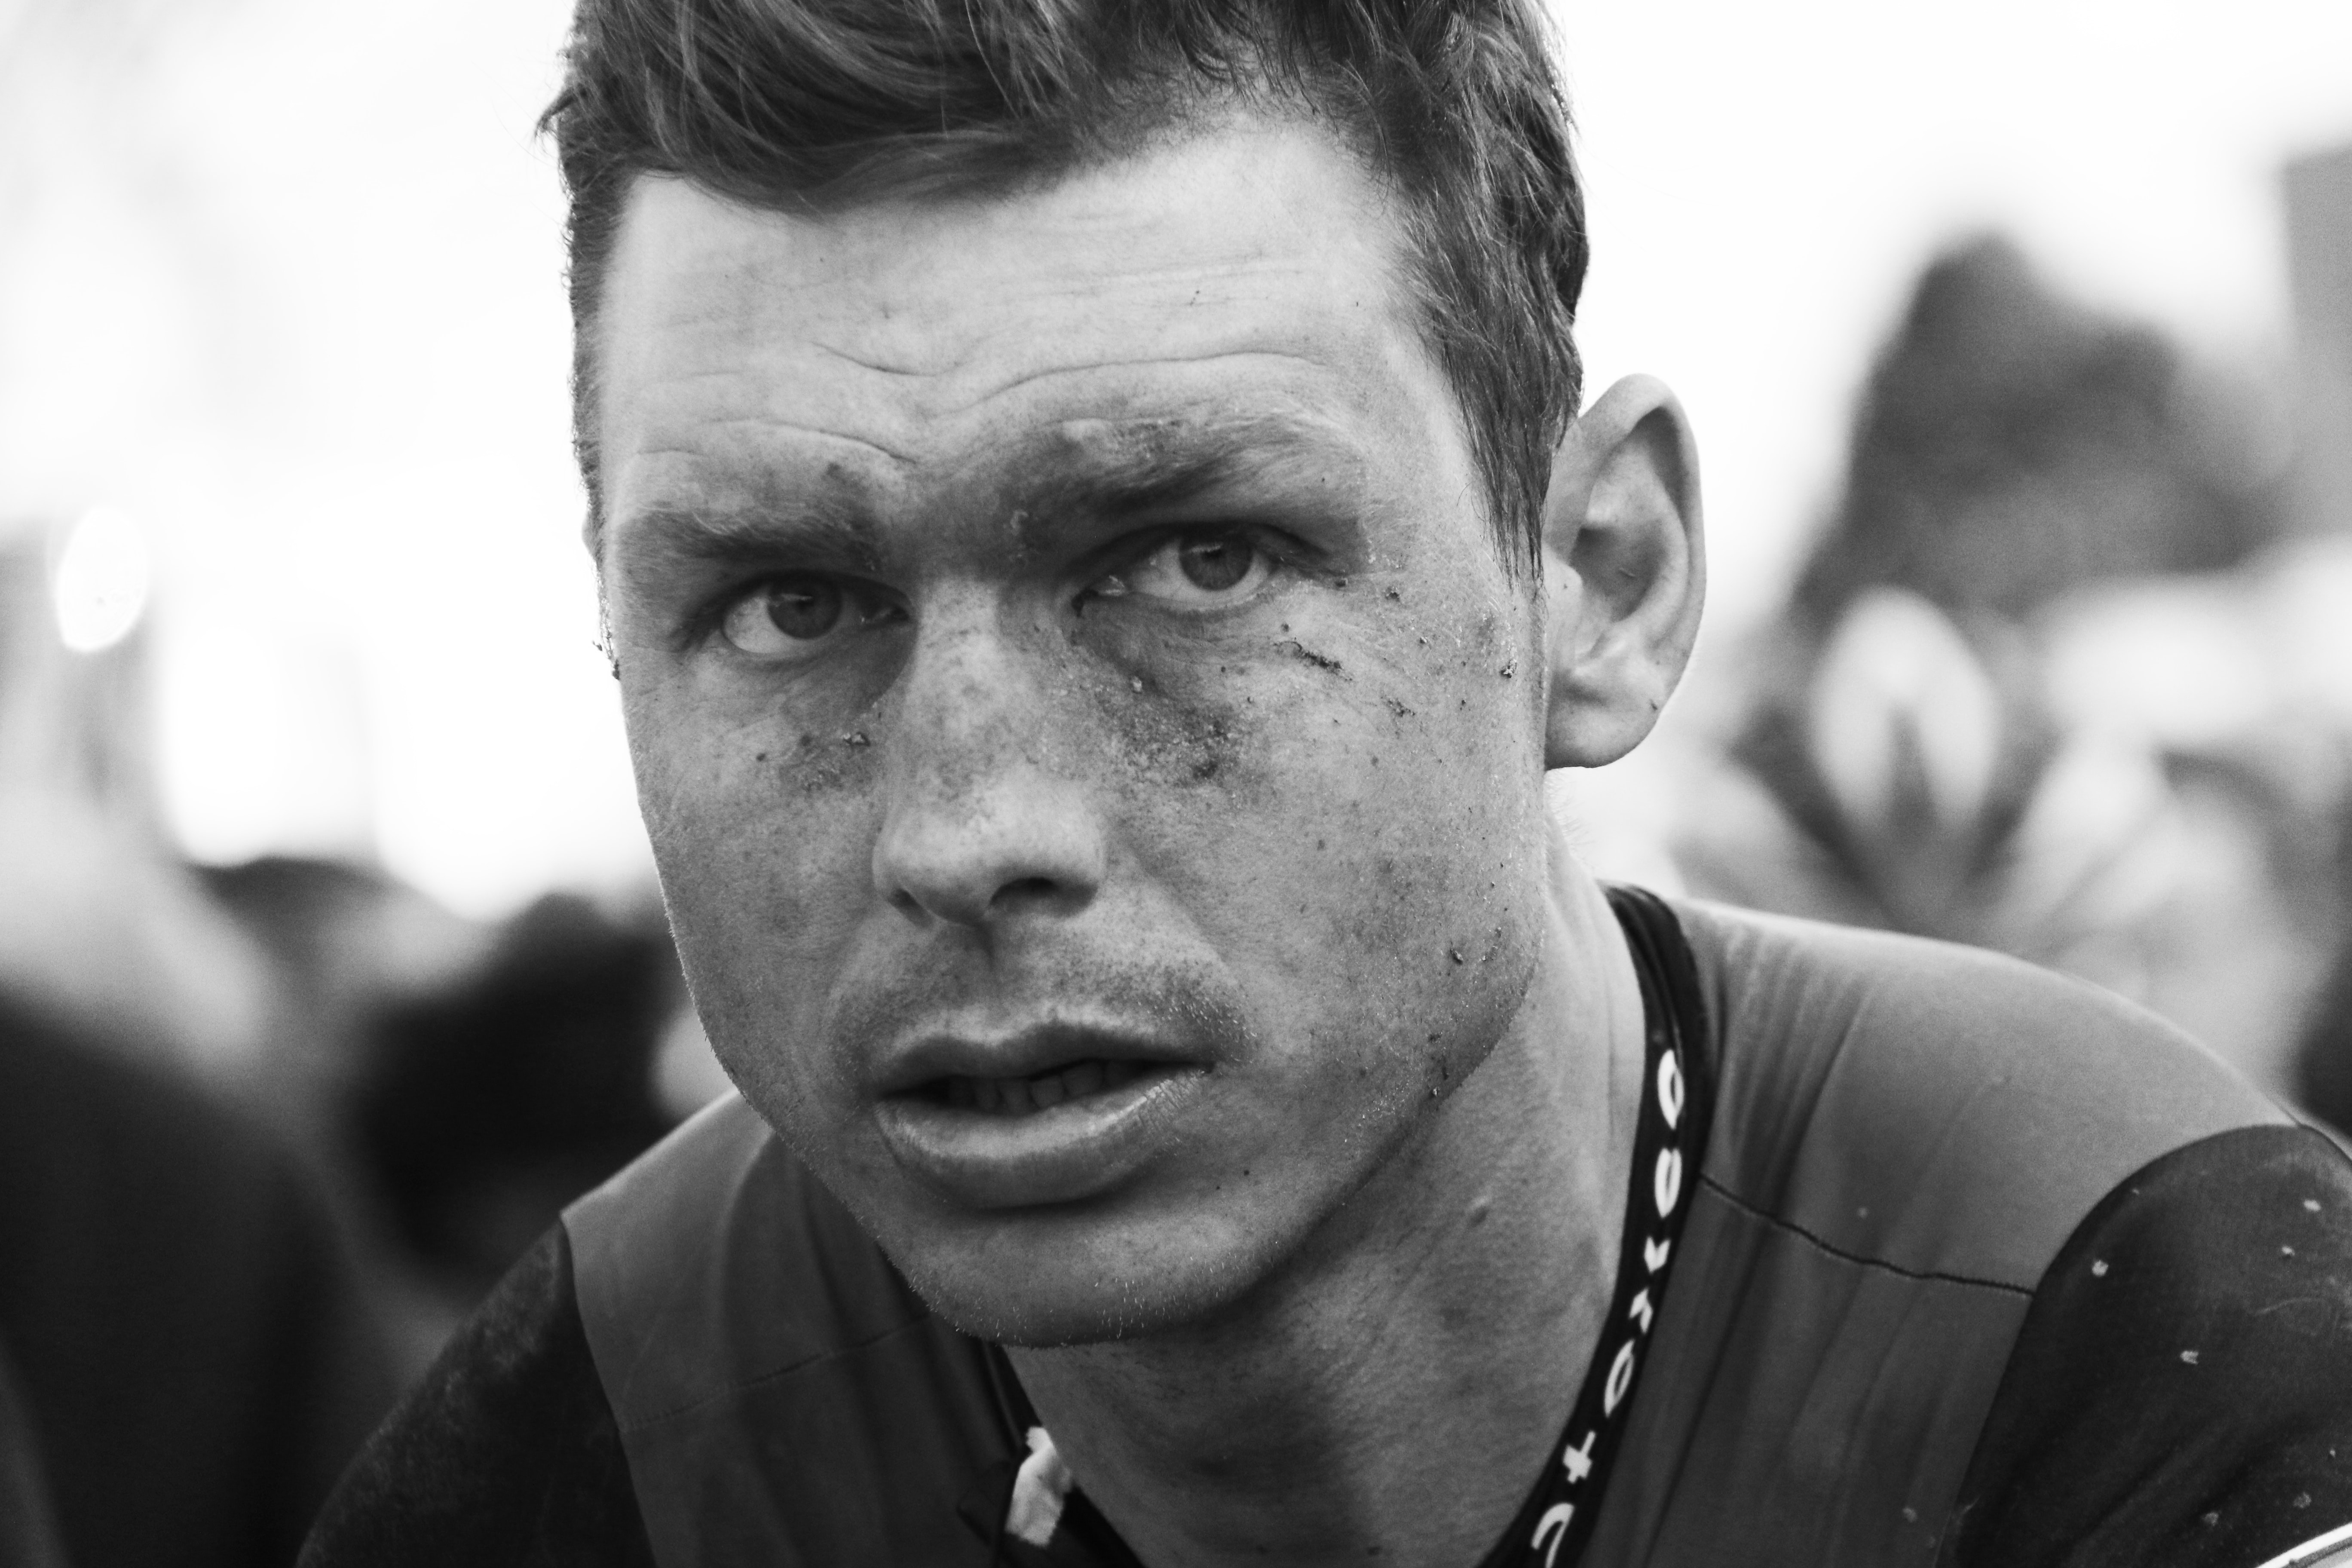 grayscale photo of man with dirty face,